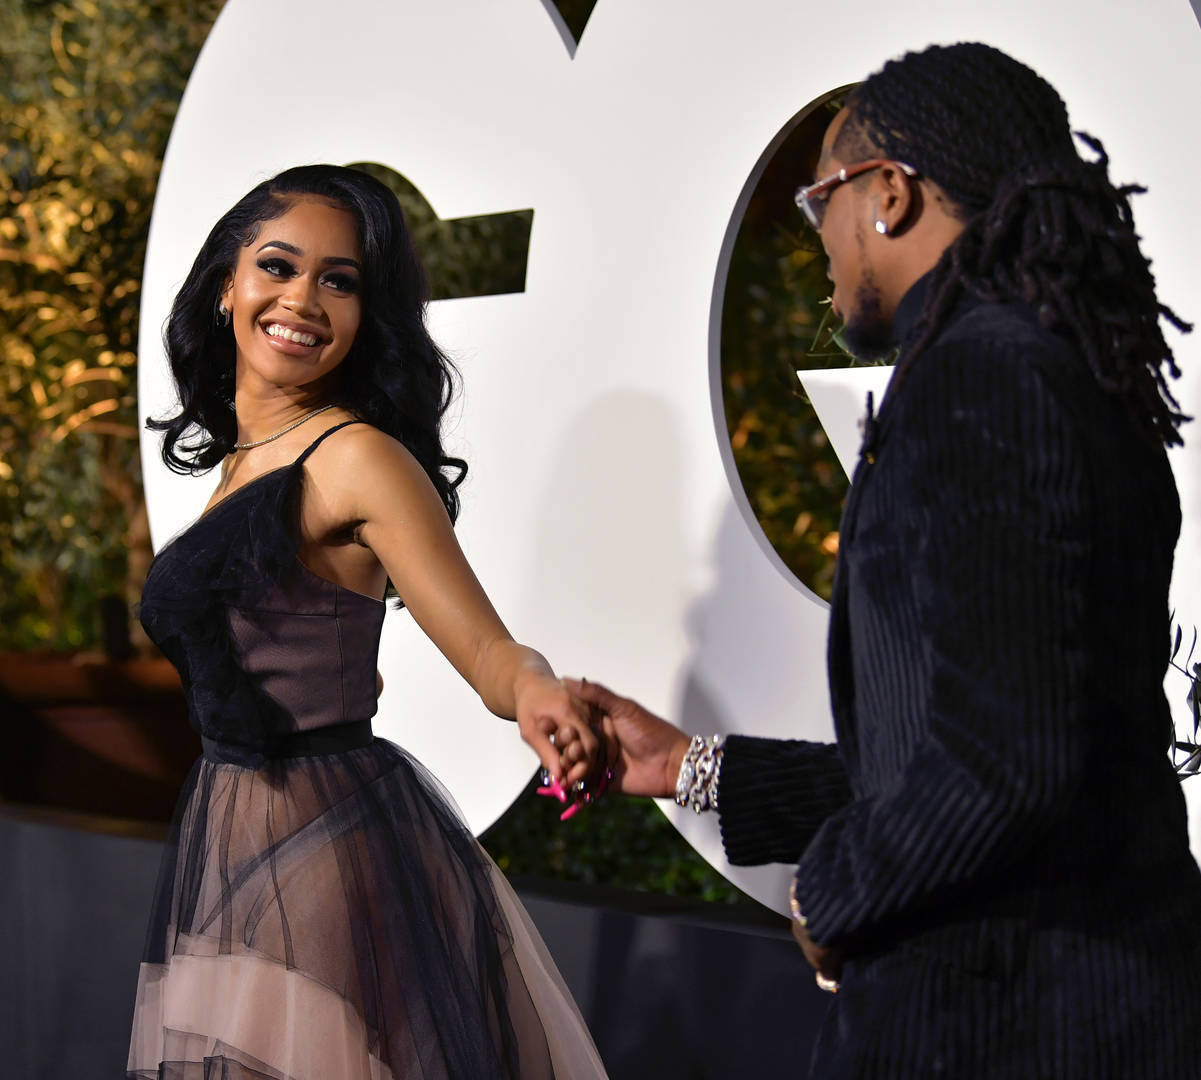 Saweetie and Quavo attend the 2019 GQ Men of the Year at The West Hollywood Edition on December 05, 2019 in West Hollywood, California.